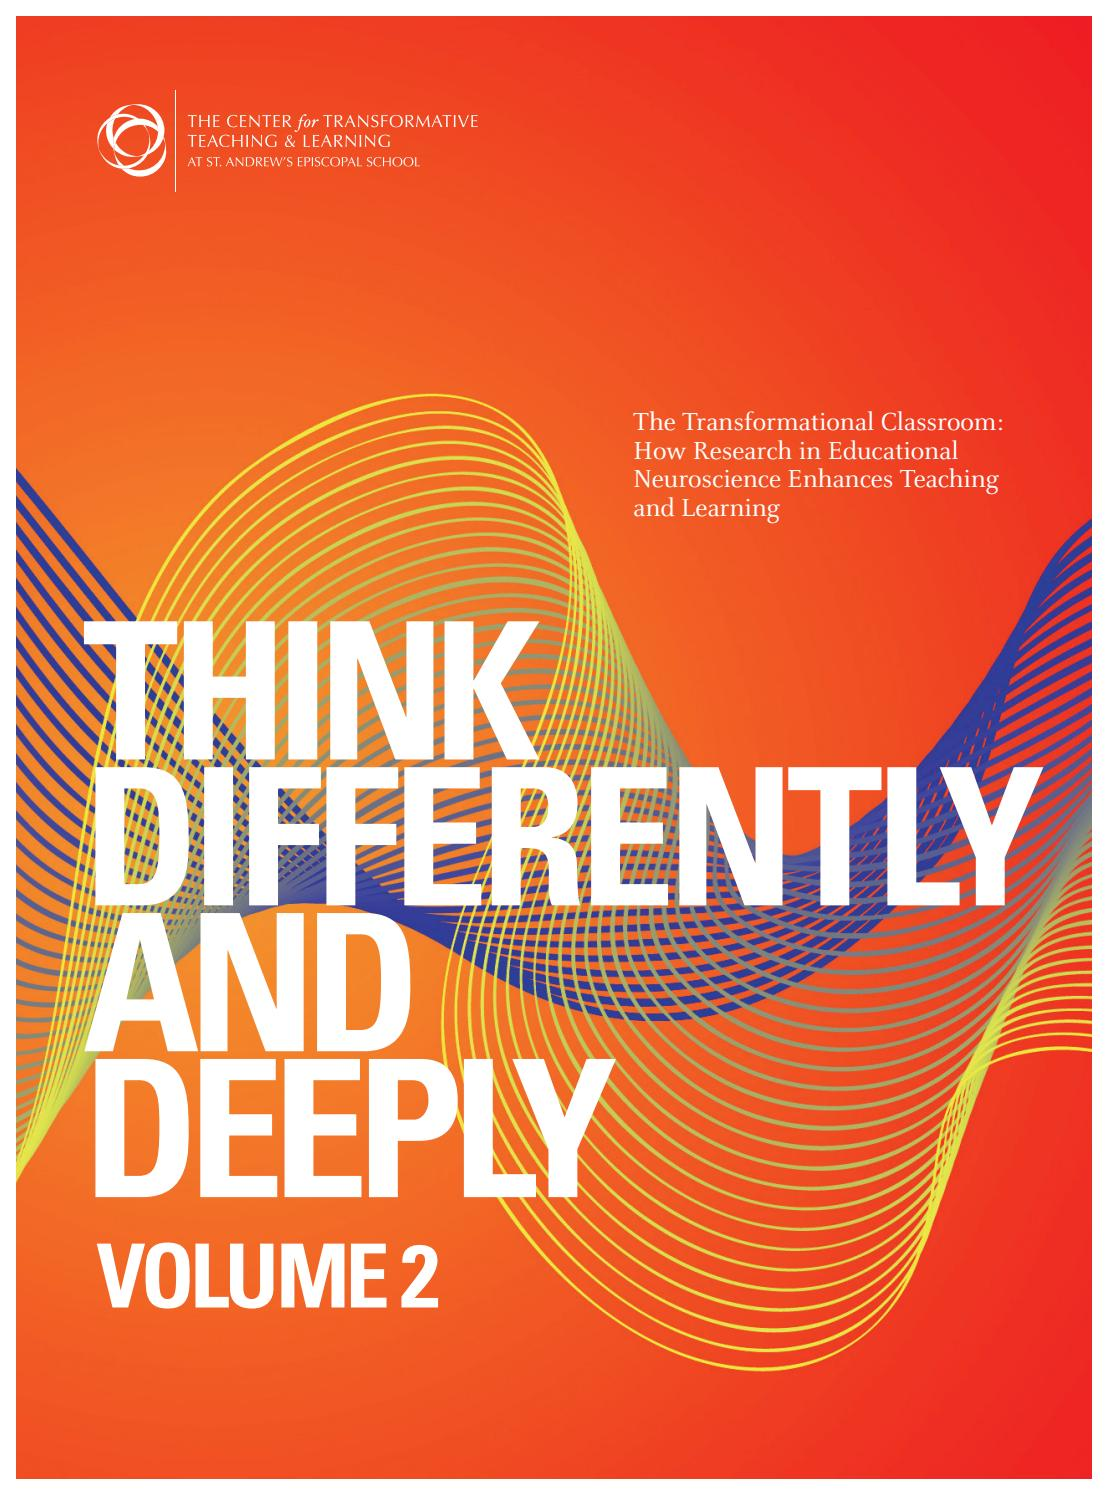 Think Differently And Deeply Volume 2 Second Edition By St Electrical Wiring Diagram Symbols Flashcards Quizlet Andrews Episcopal School Issuu